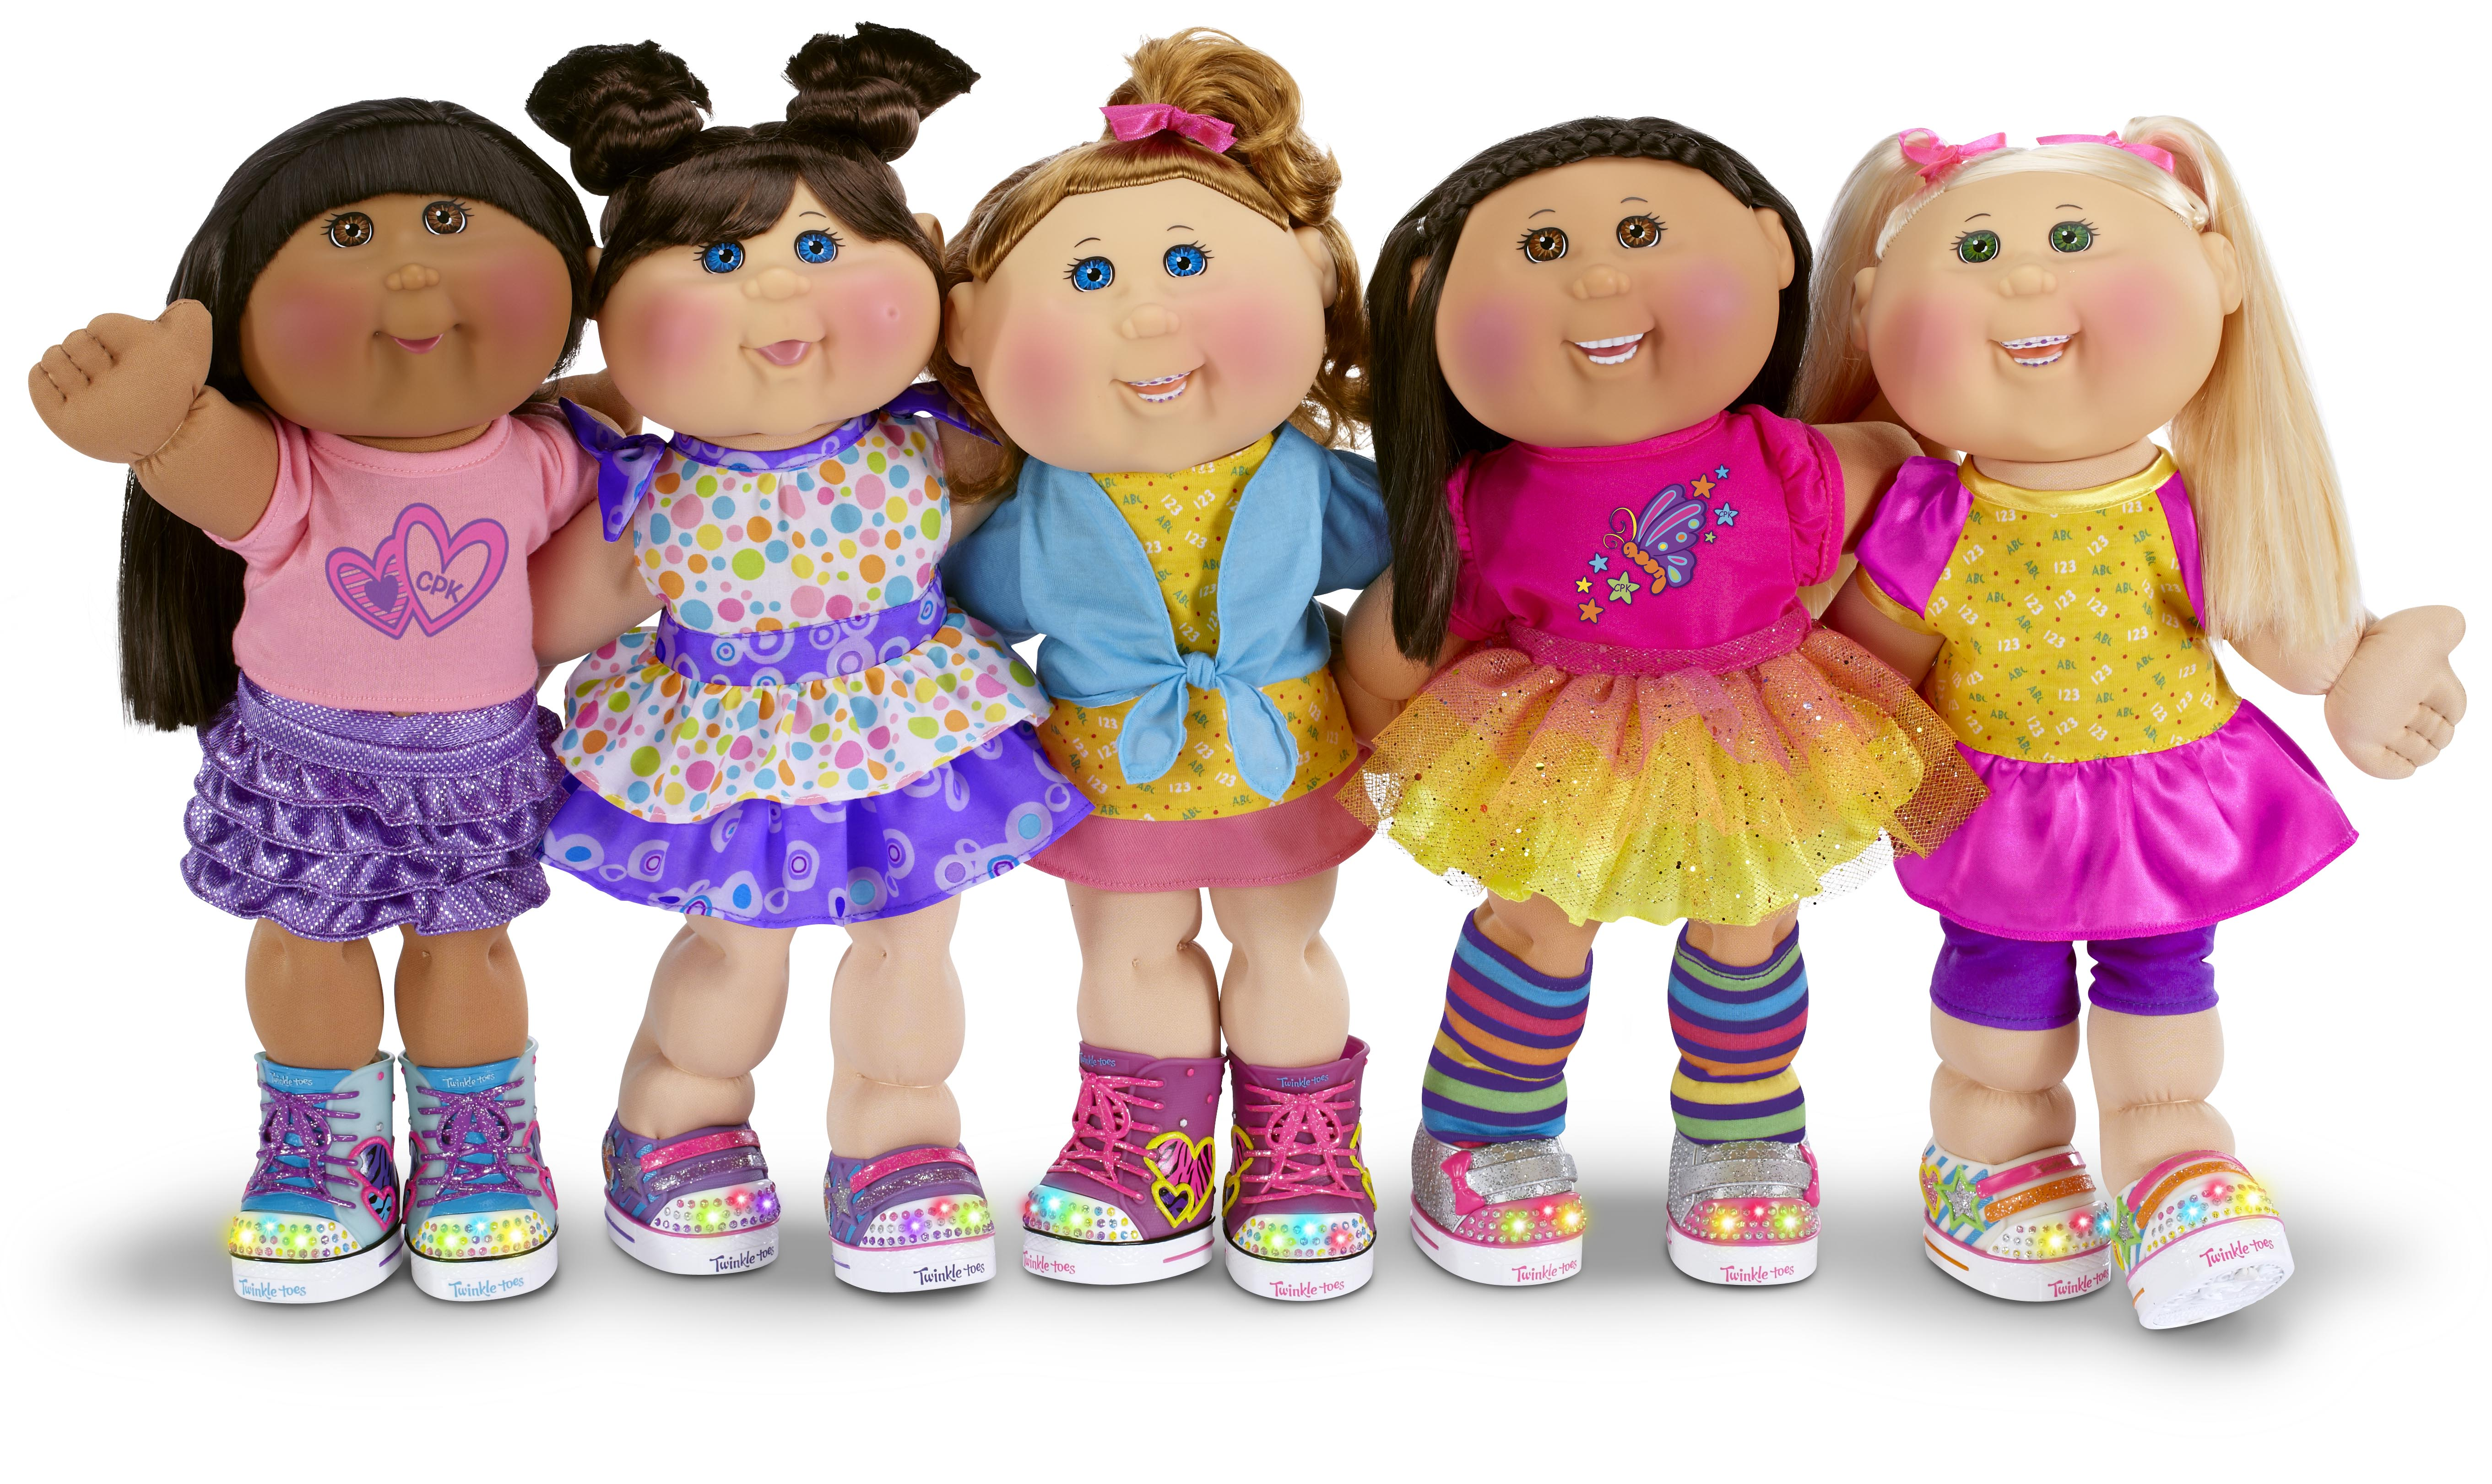 Cabbage Patch Kids Get 2014 Makeover With Skechers Shoes